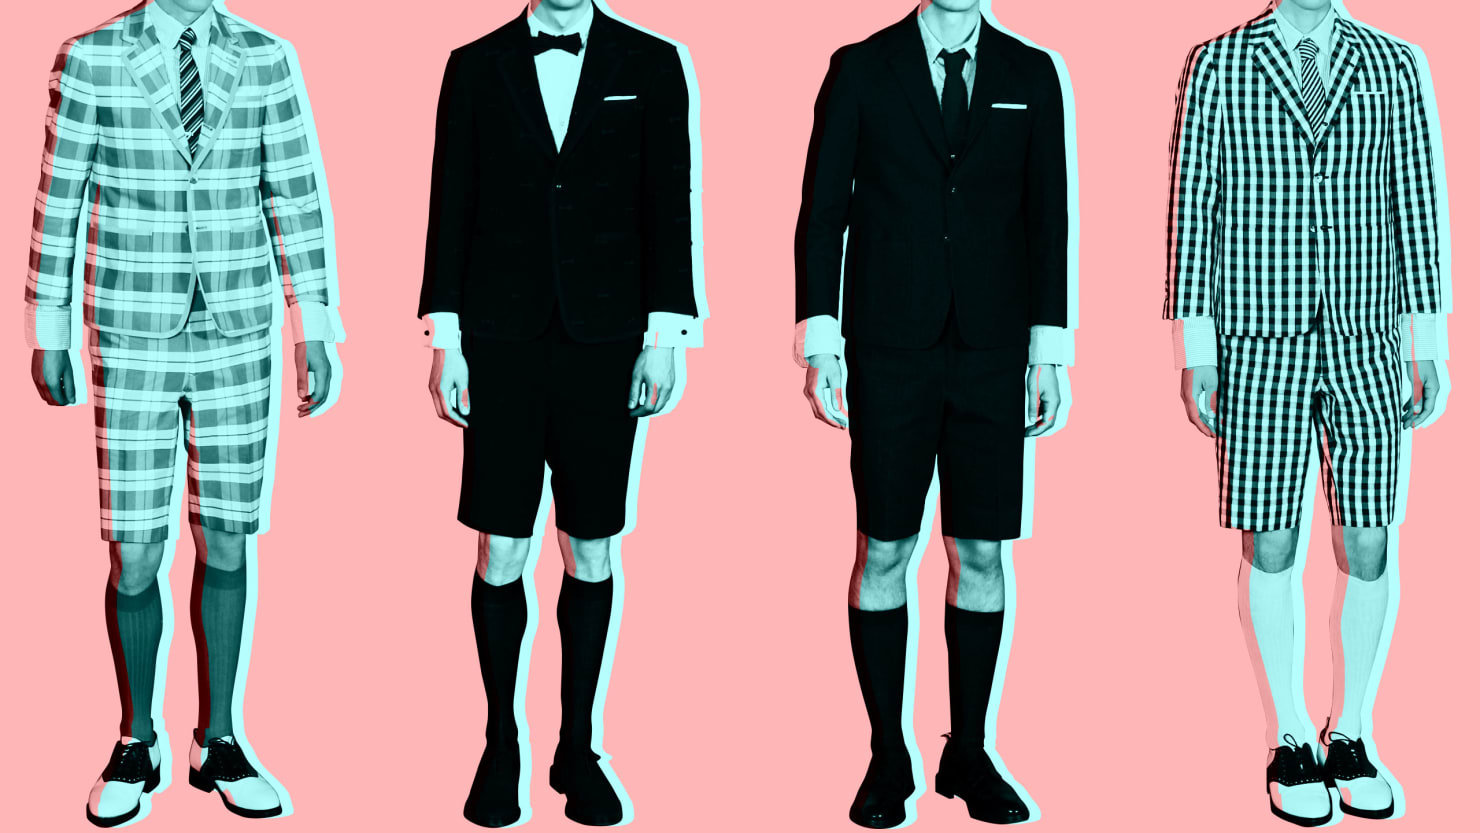 Men, Are You and Your Legs Ready for a Summer of Suit Shorts?